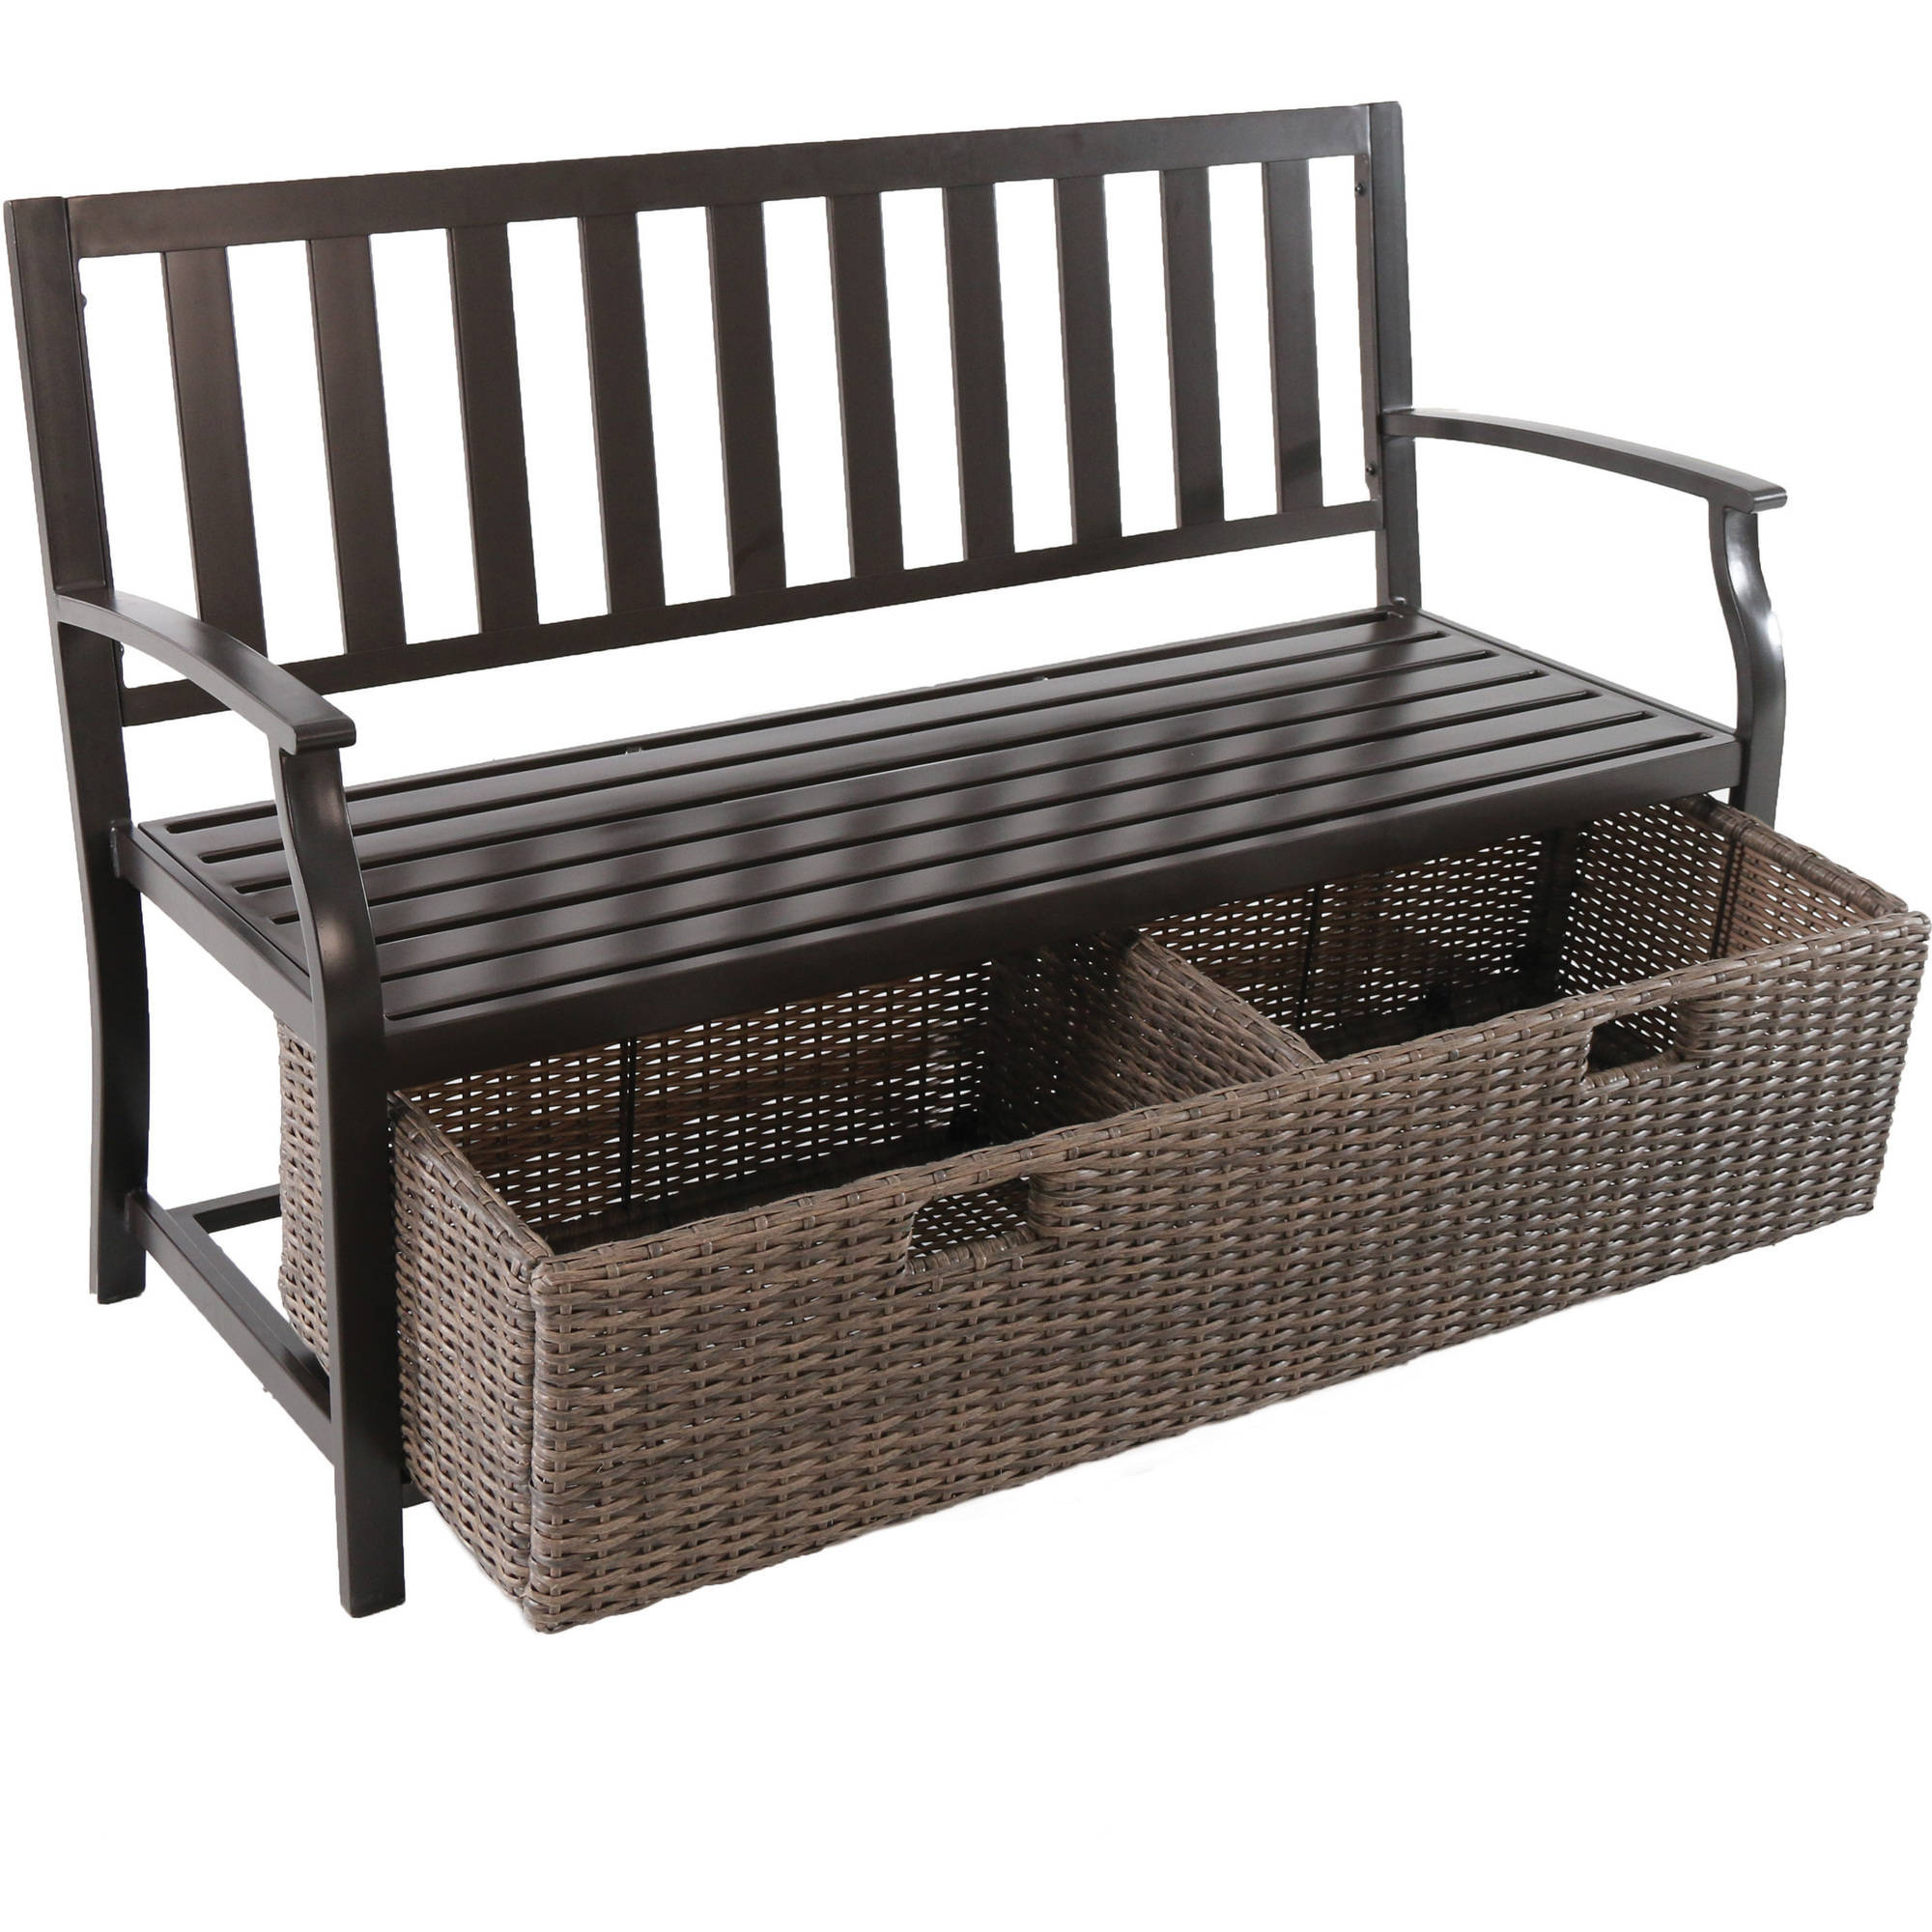 Better Homes U0026 Gardens Camrose Farmhouse Outdoor Bench With Wicker Storage  Box   Walmart.com